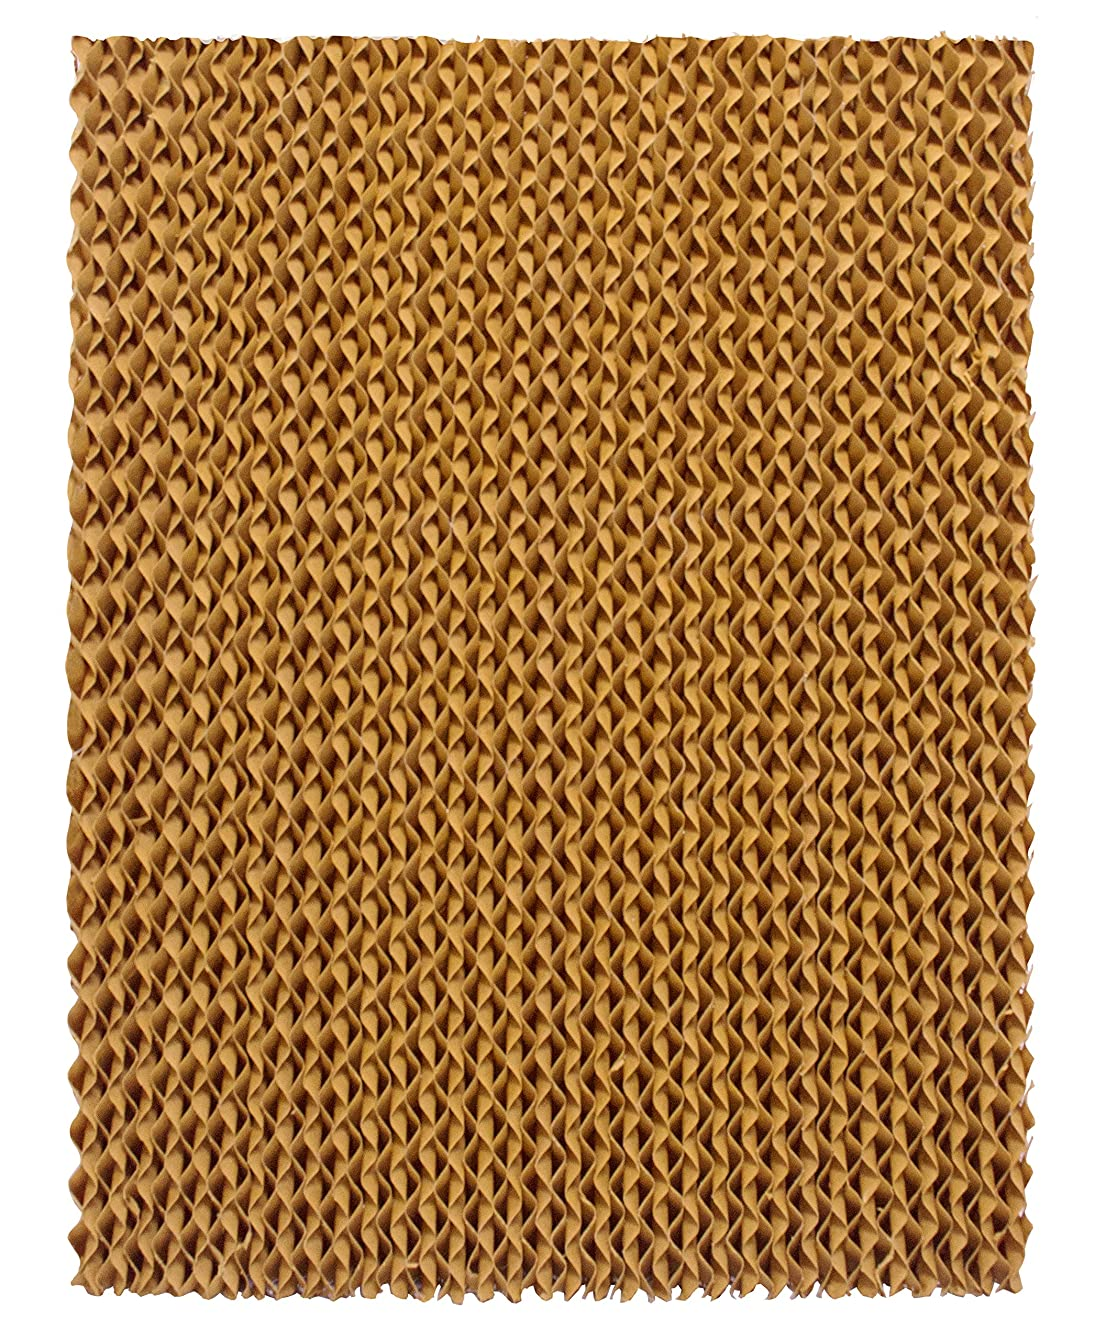 Honeywell Replacement Pad Evaporative Cooler Models CL30XC & CO30XE, Gold